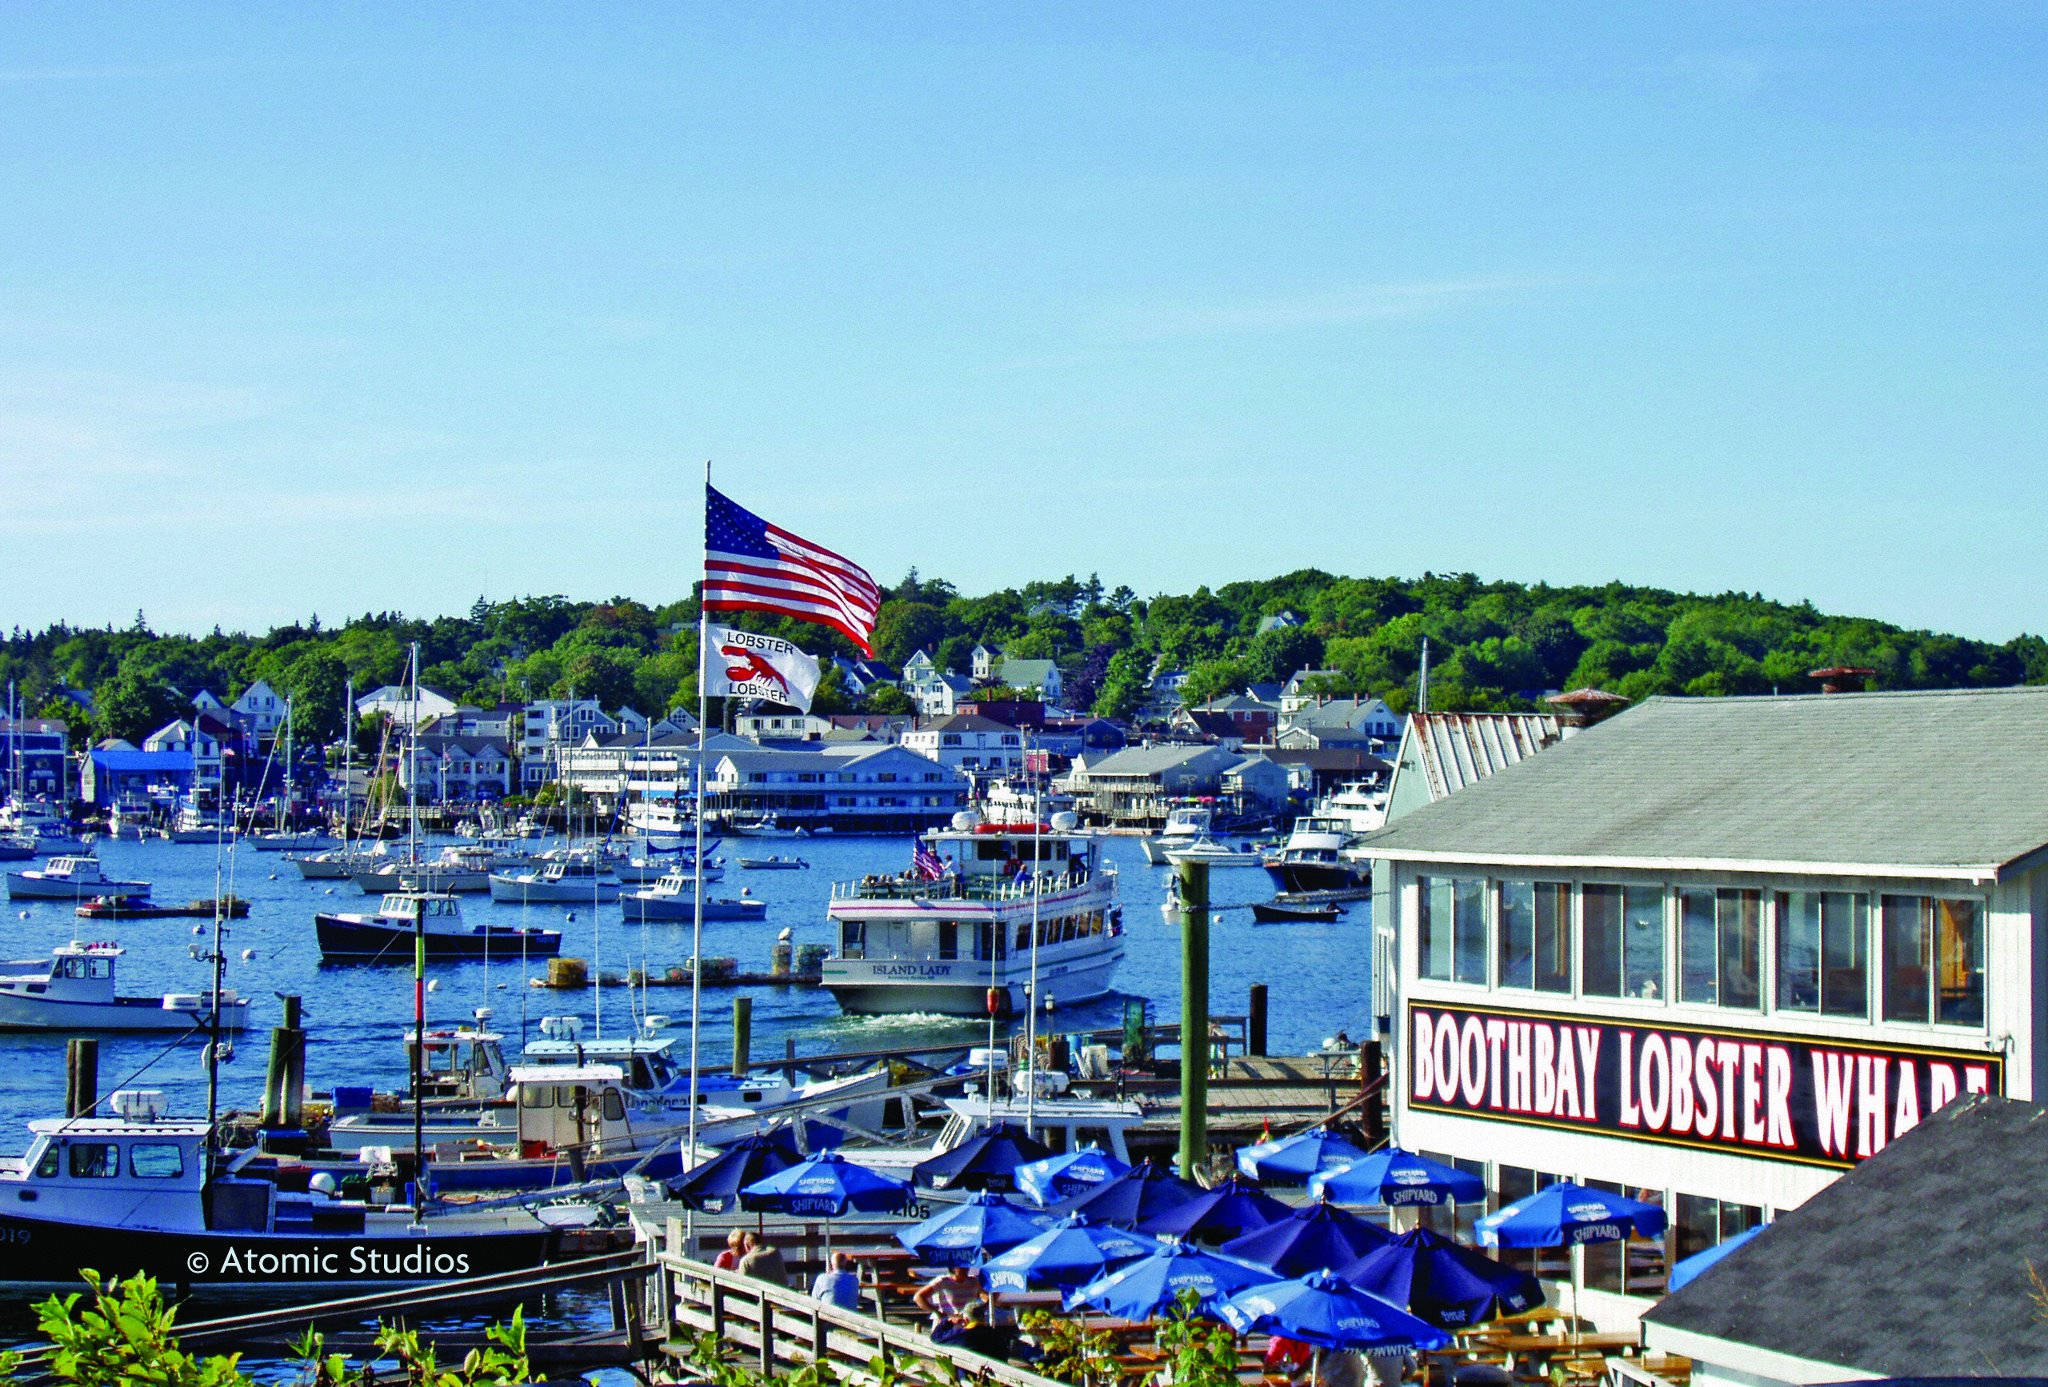 Lobster wharf with many fishing boats in water and dockside restaurant